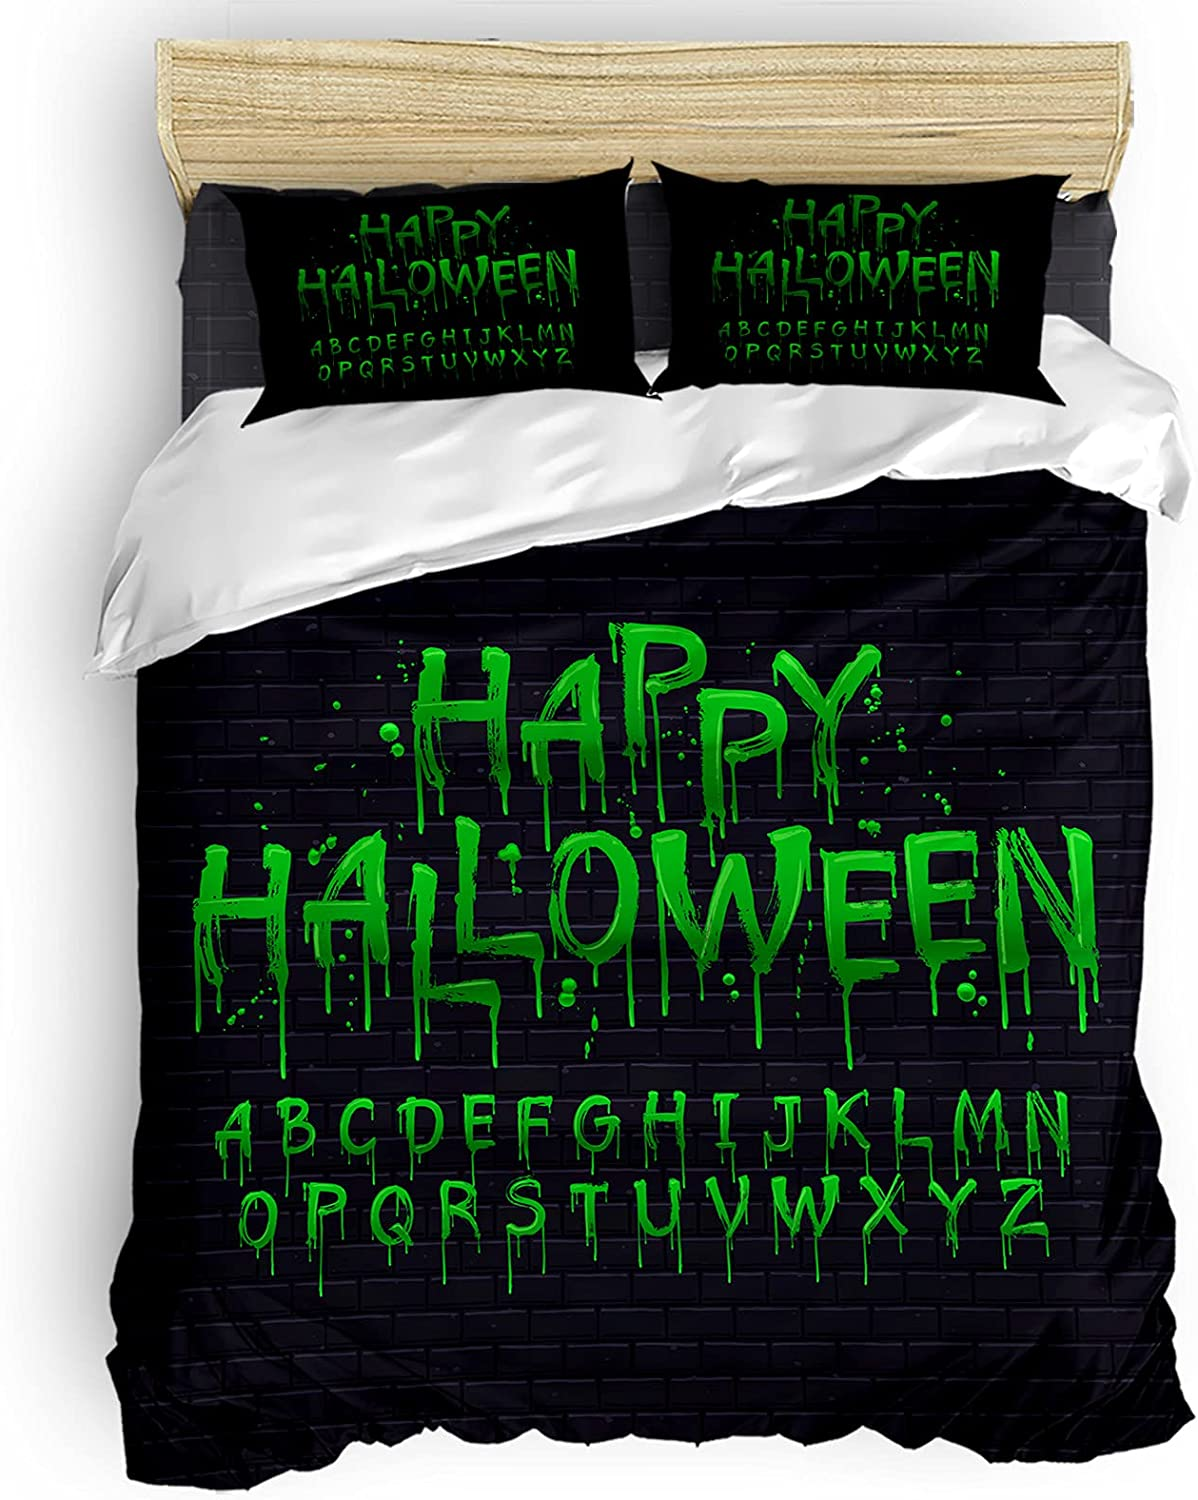 Bedding Duvet Cover 4 Piece Set Bloody wholesale Words Scary Portland Mall Green C